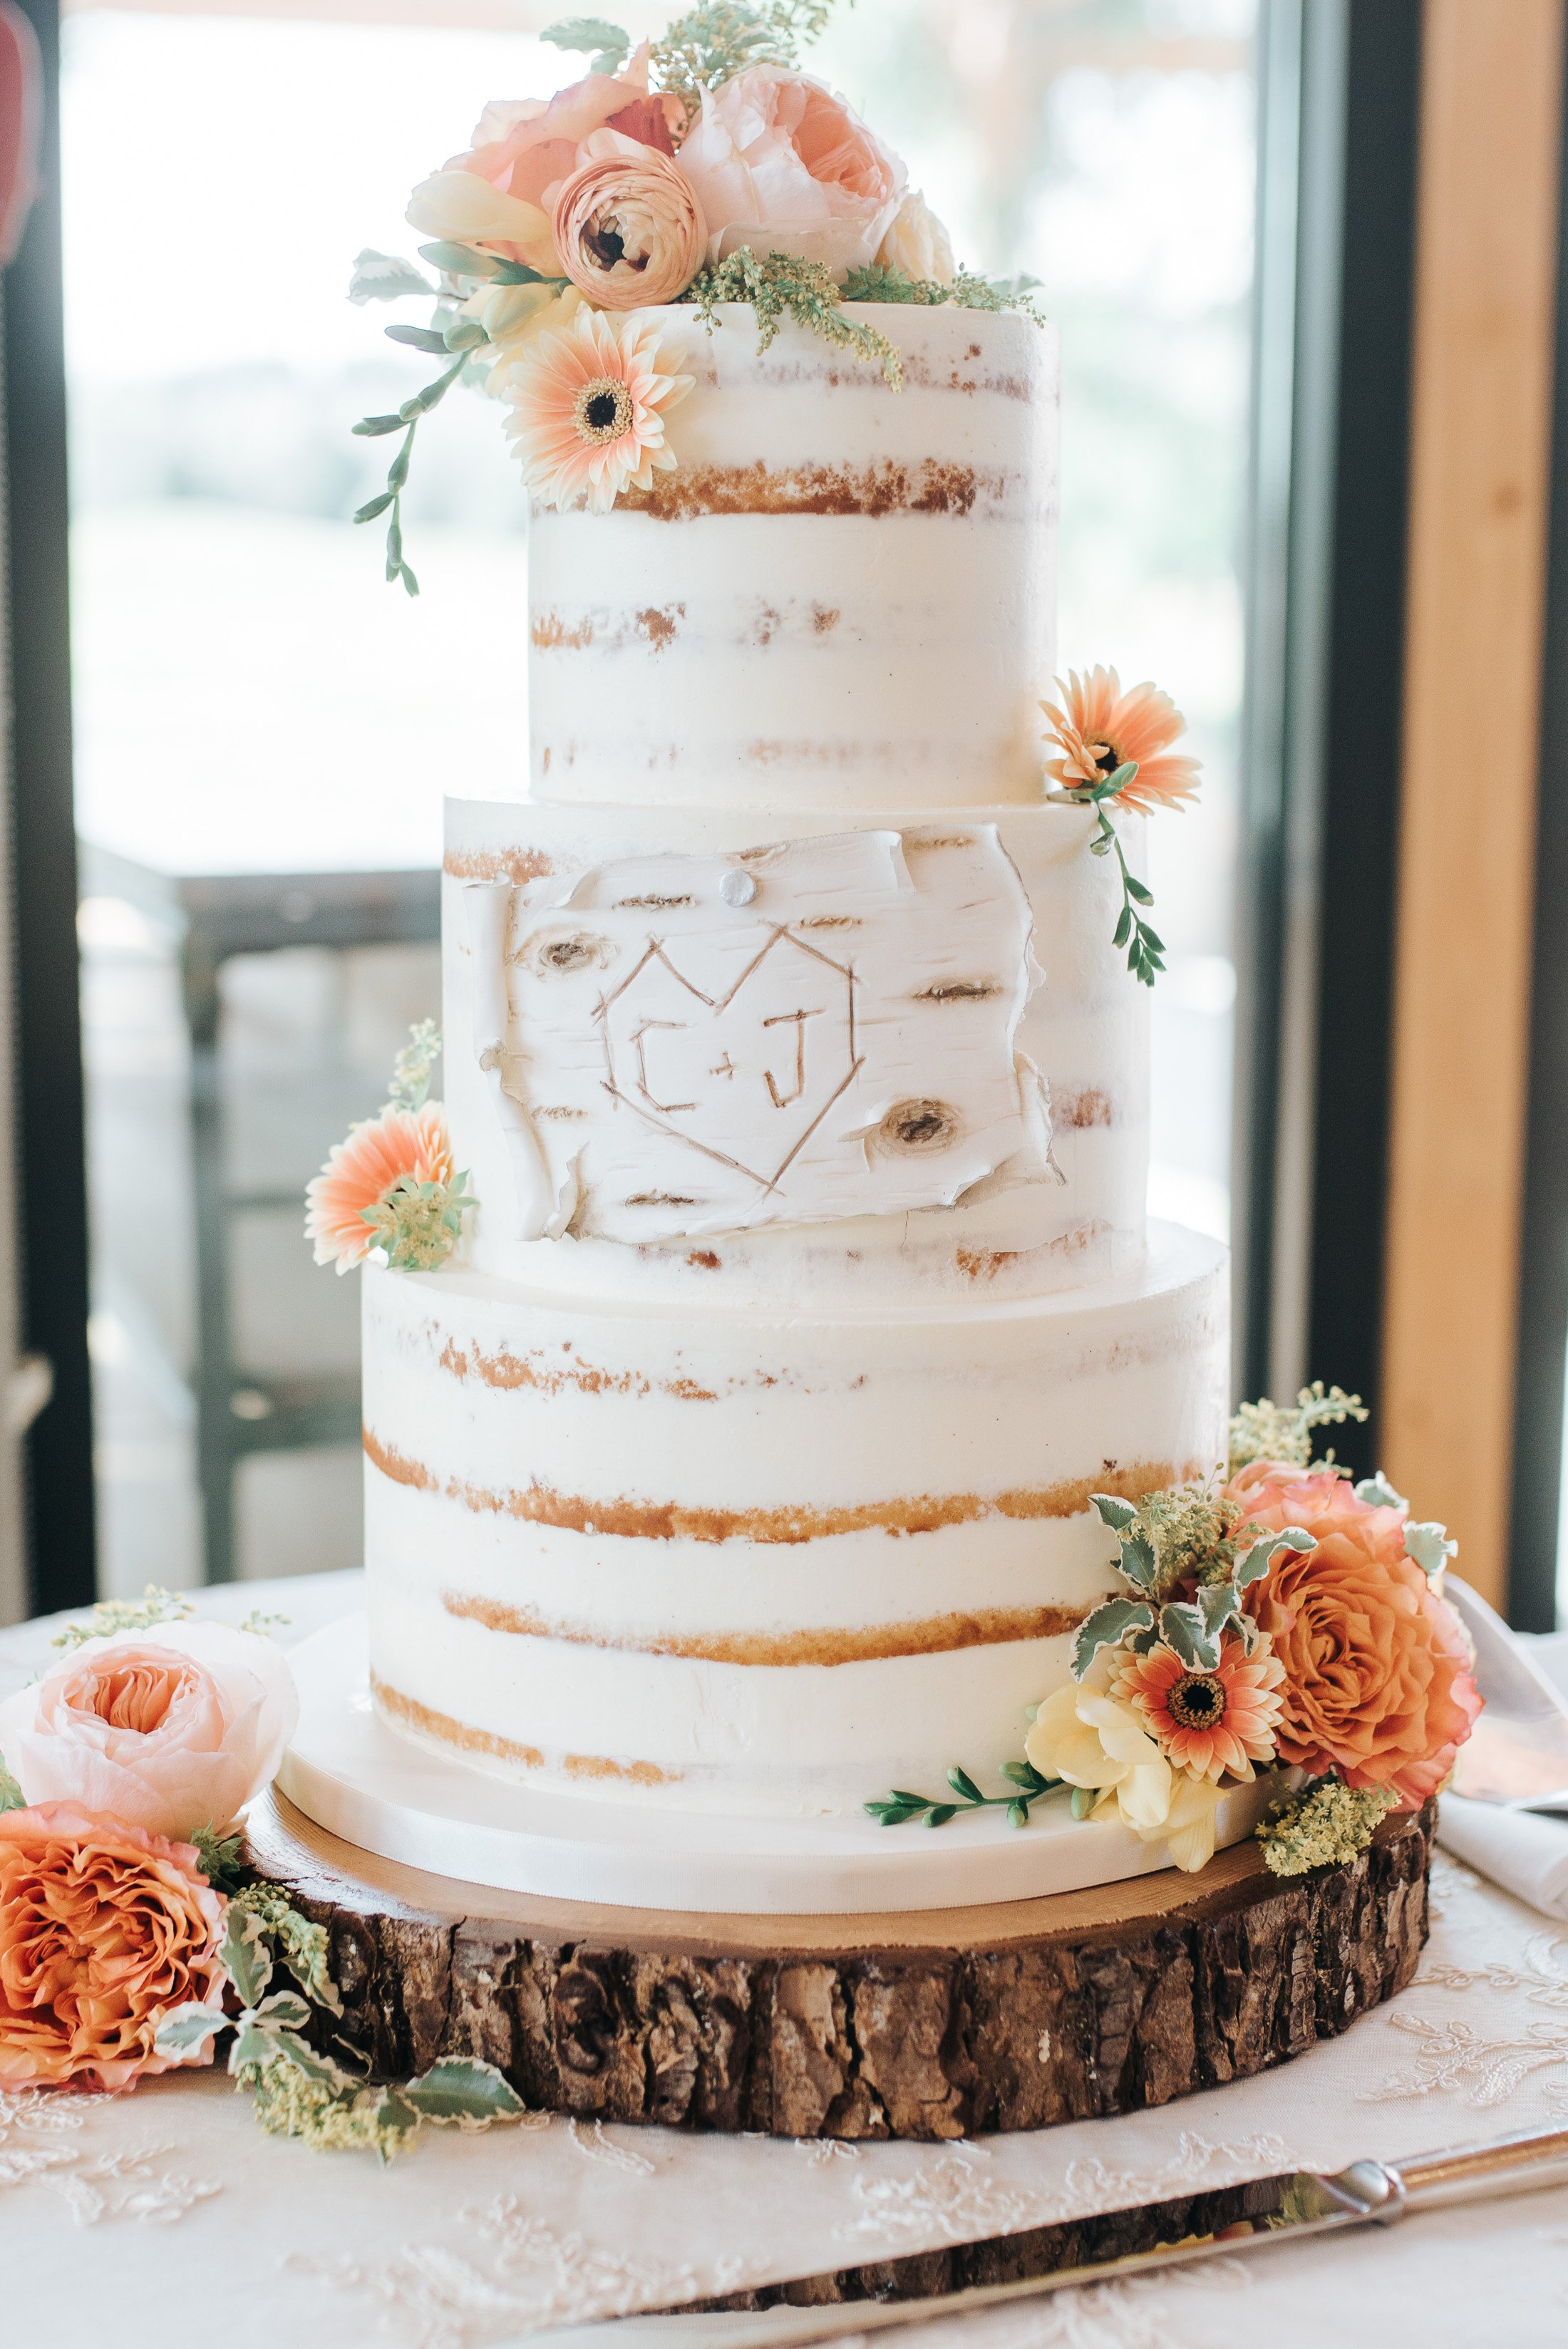 047 - nature wedding cake